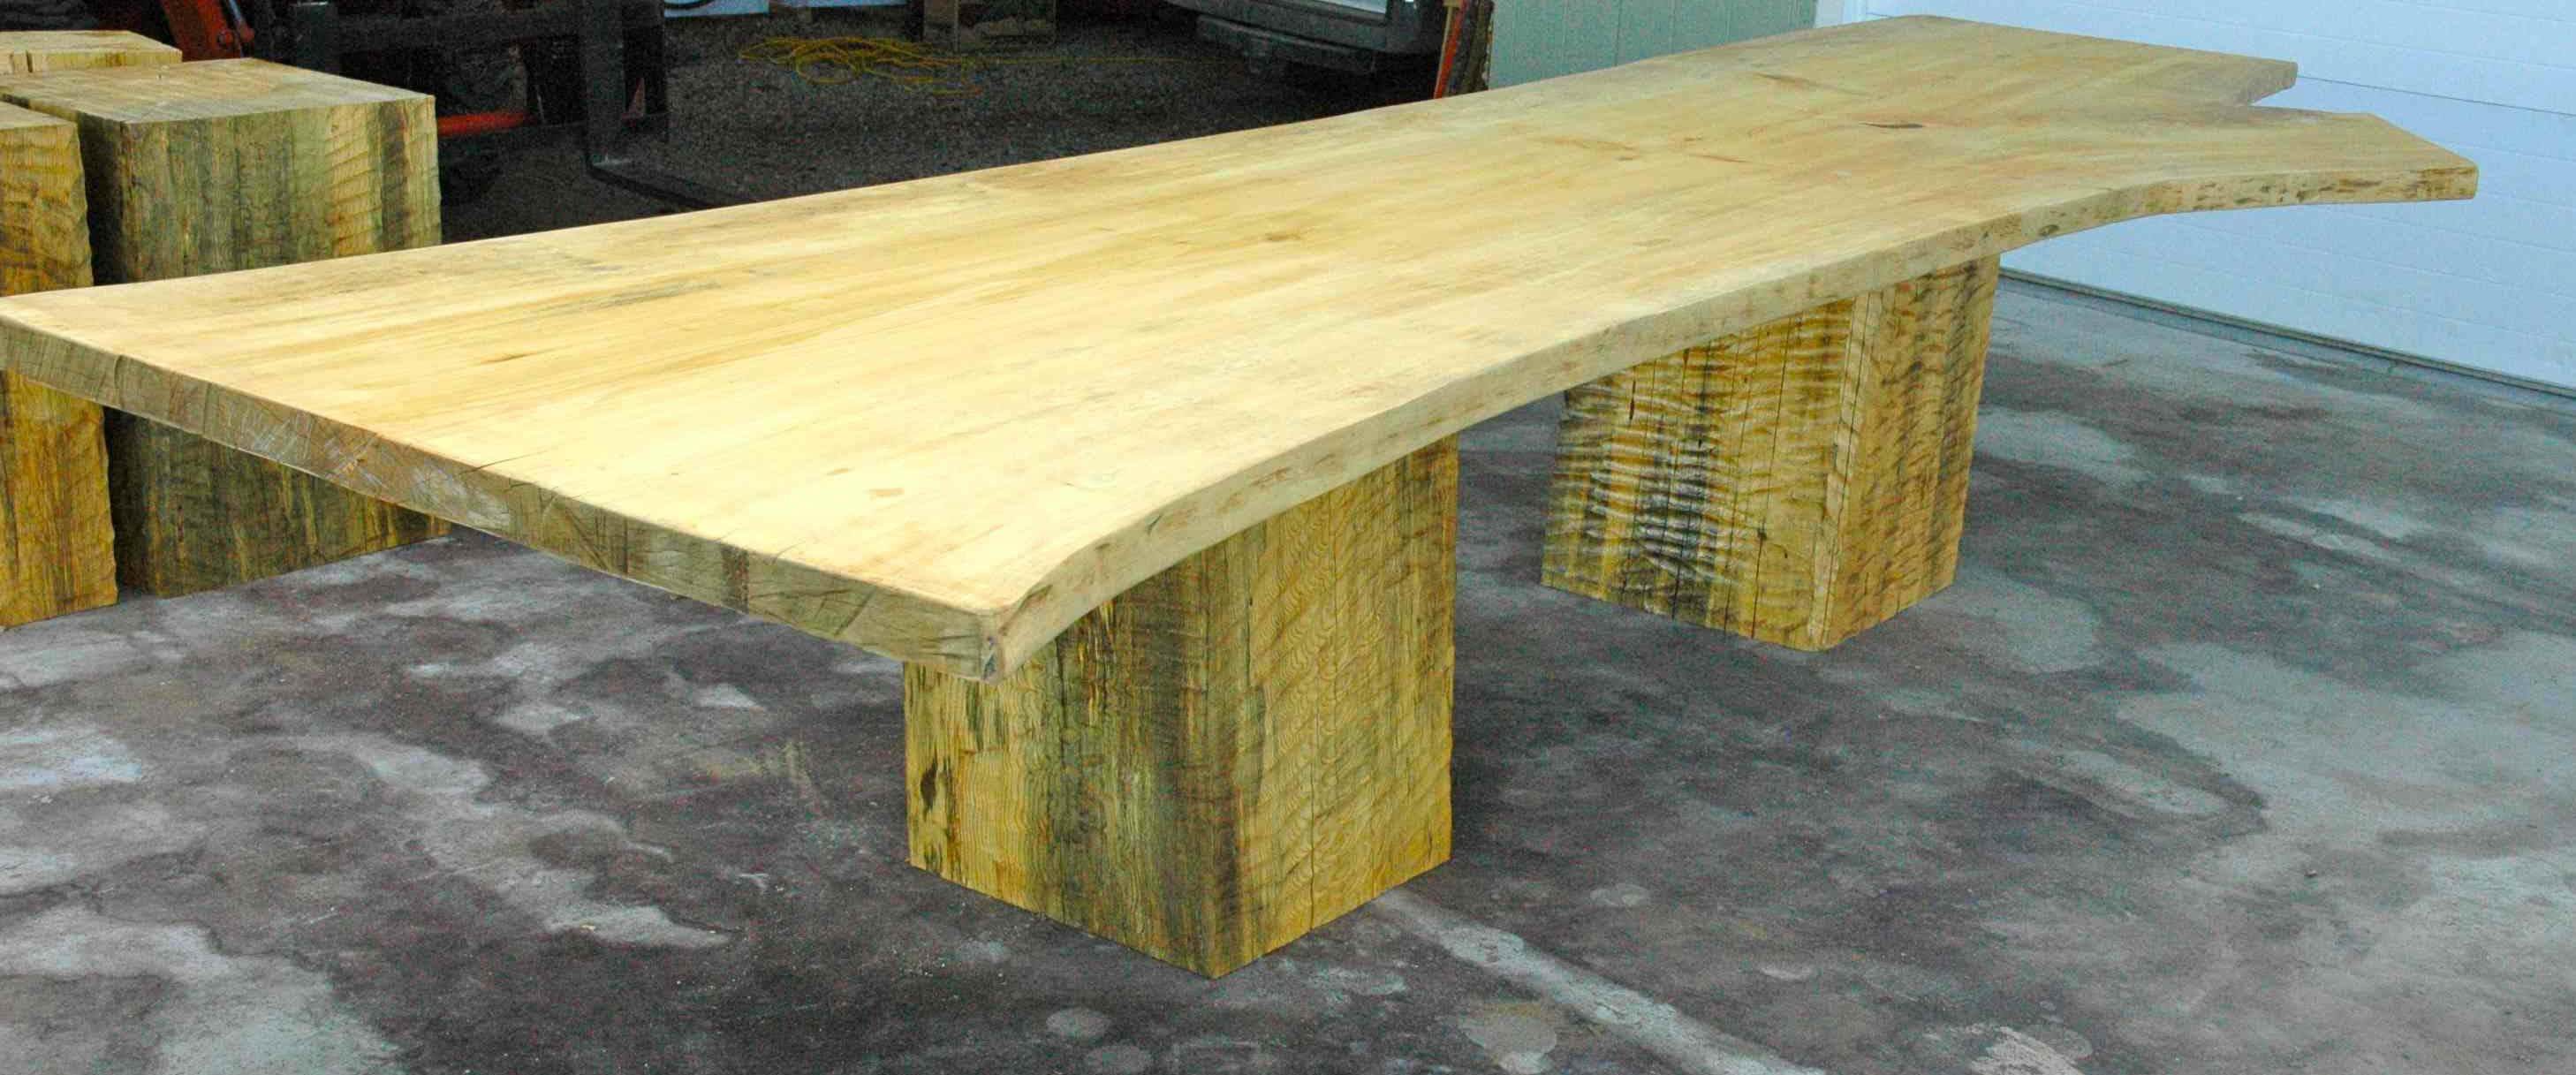 15 5 Long Ginkgo Slab Custom Dining Table By Dumond s Furniture